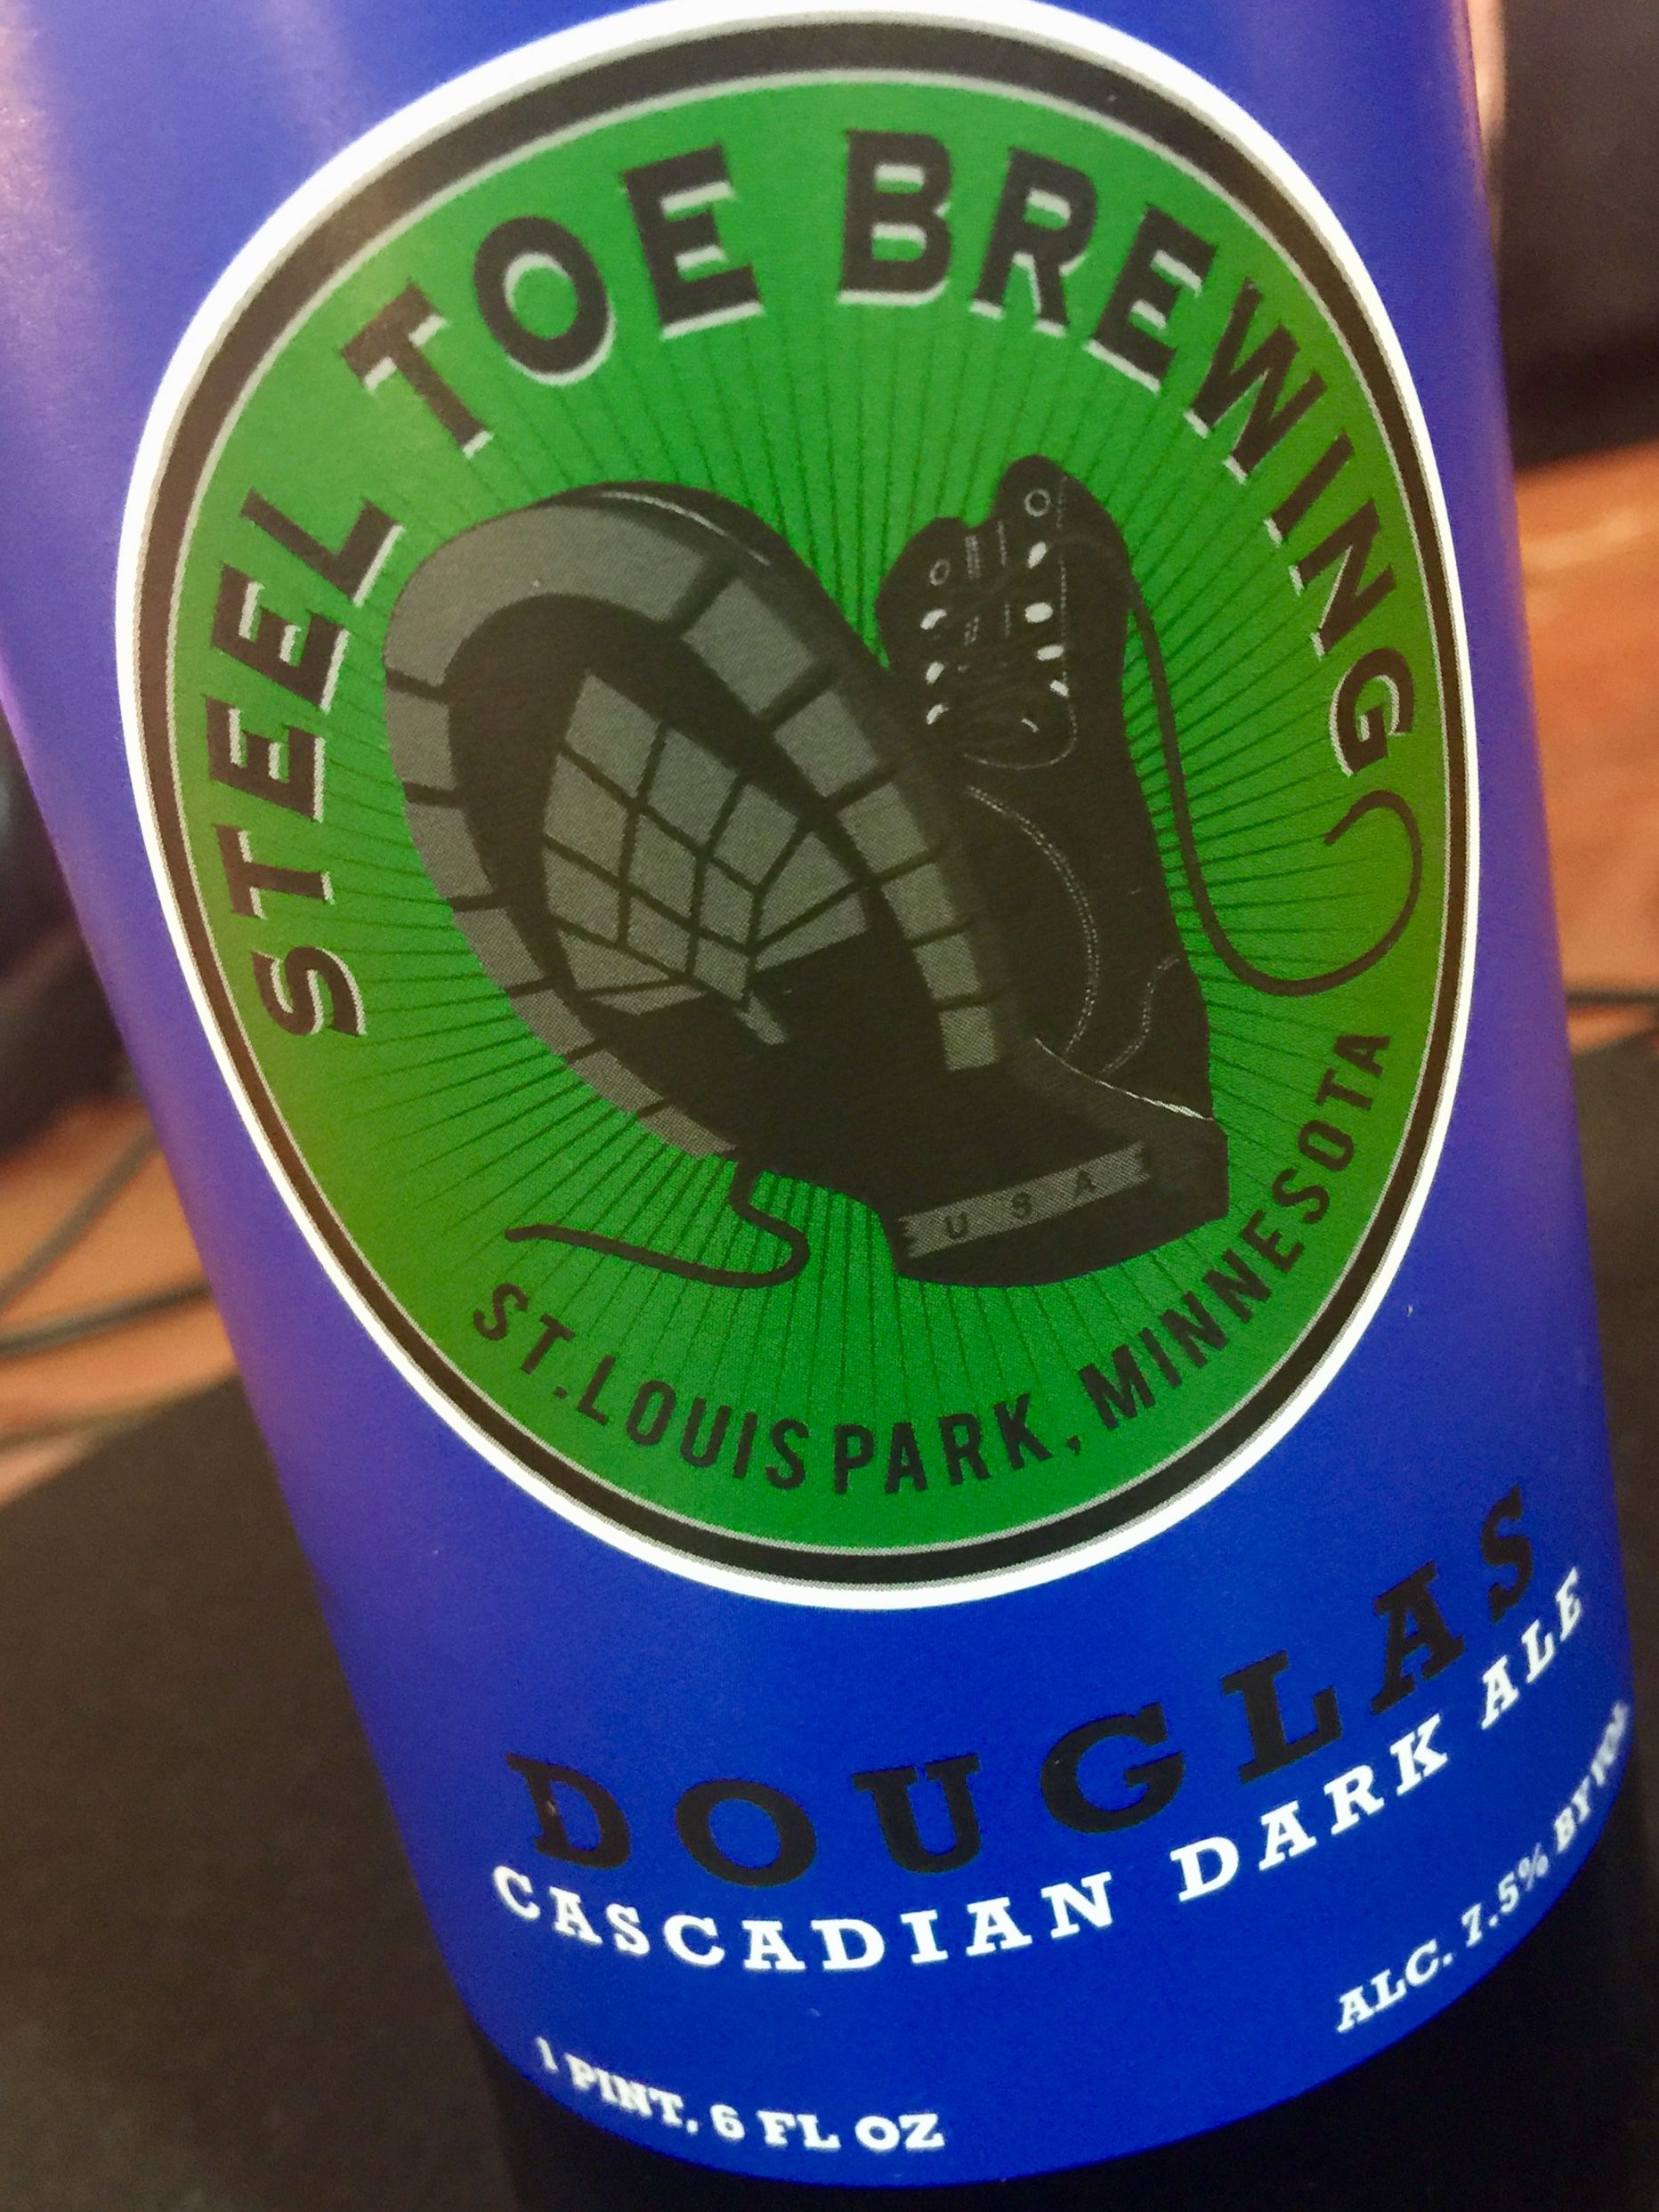 Douglas cascadian dark ale with images brewing ale